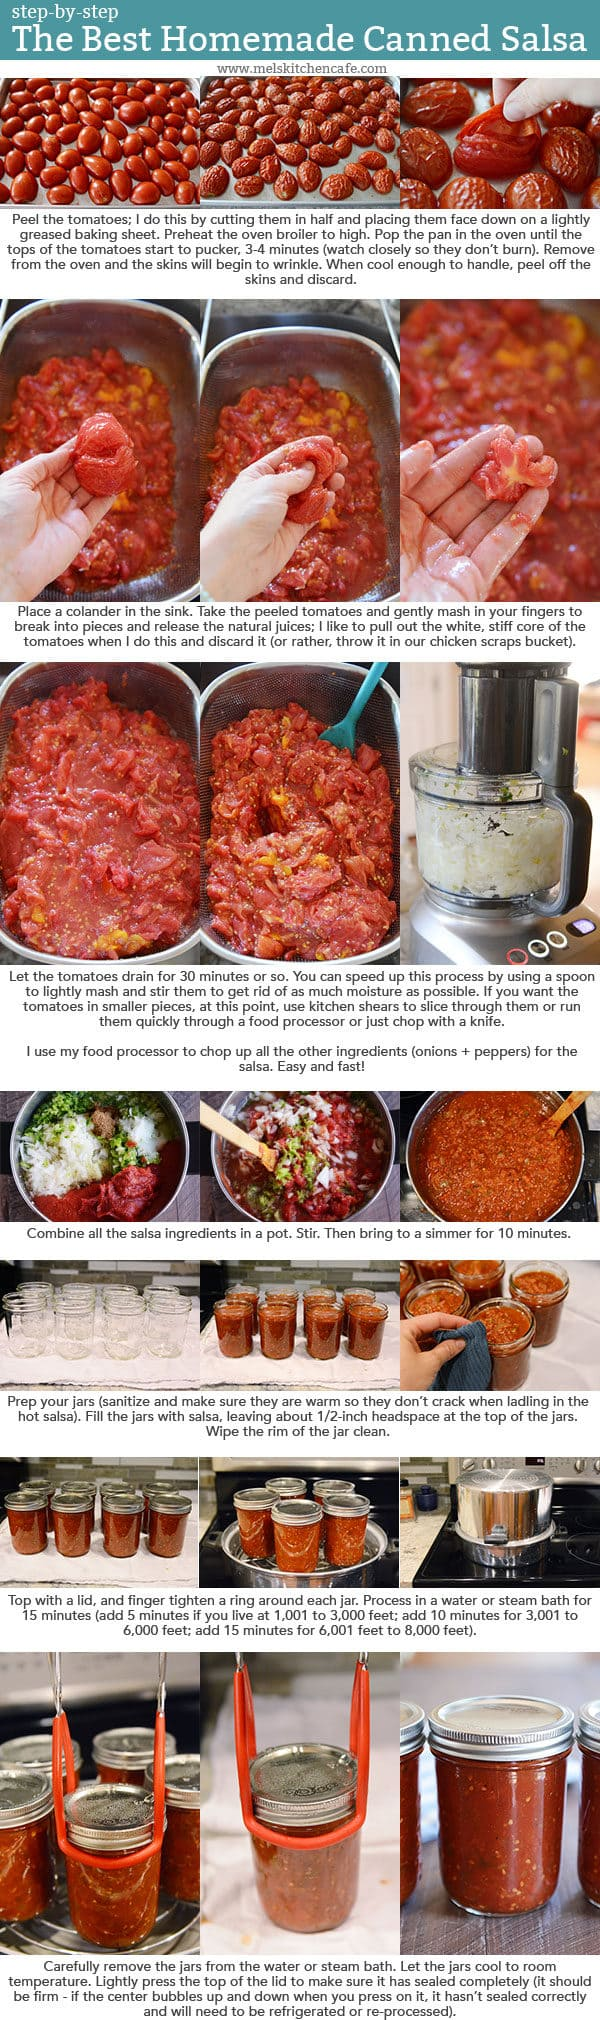 Step-by-step images and text instructions for canning homemade salsa.